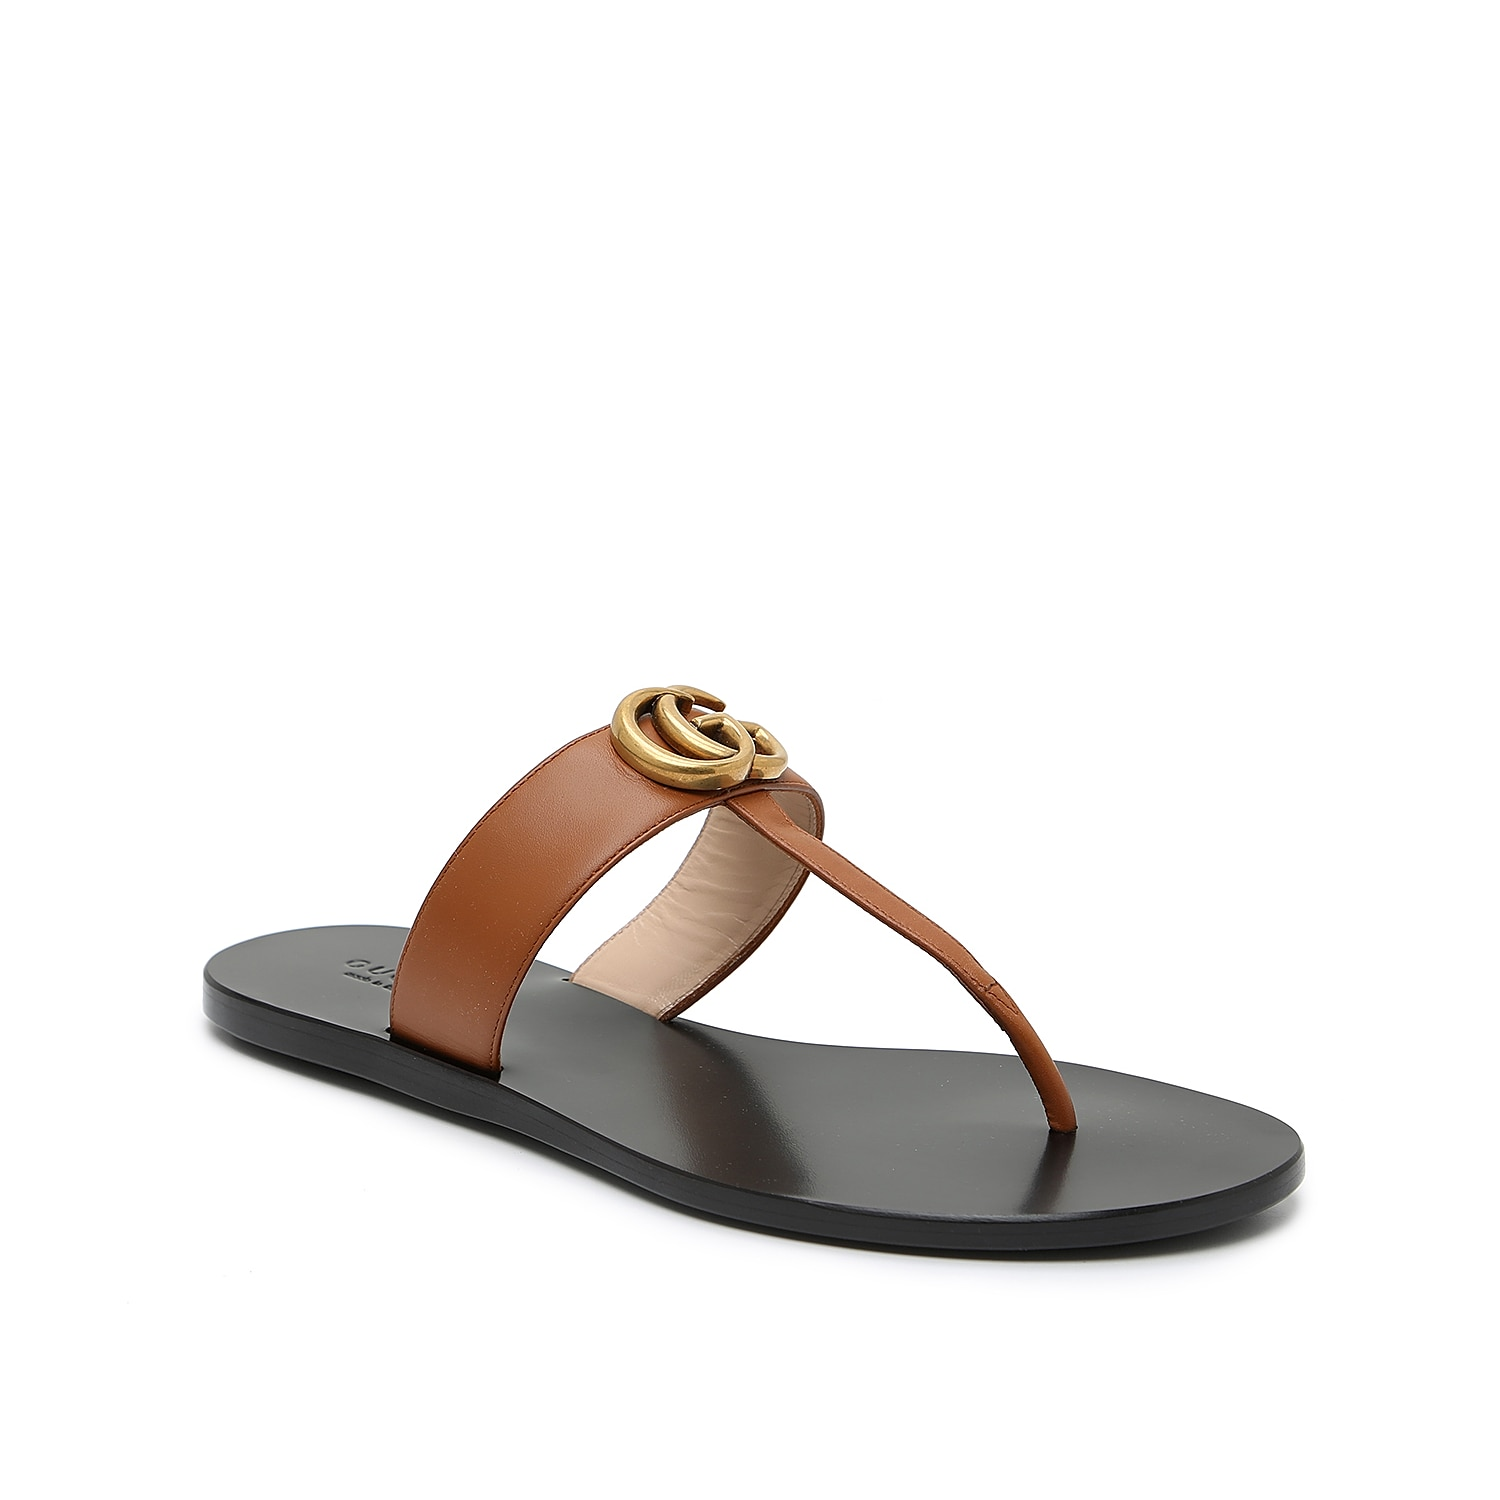 Embellished with archival Double G hardware inspired by 1970s Gucci fashions, the Marmont thong sandals are effortlessly simple to wear and style. Supple Italian-crafted leather creates a smooth textural finish and a minimal T-strap silhouette with a heel-less outsole feels like a barely-there fit.  Made in Italy from carefully selected materials. To extend product life, protect from direct light, heat, and rain. Fill shoe with tissue paper to help maintain the shape and absorb humidity. Store in the provided flannel bag and structured shoe box.